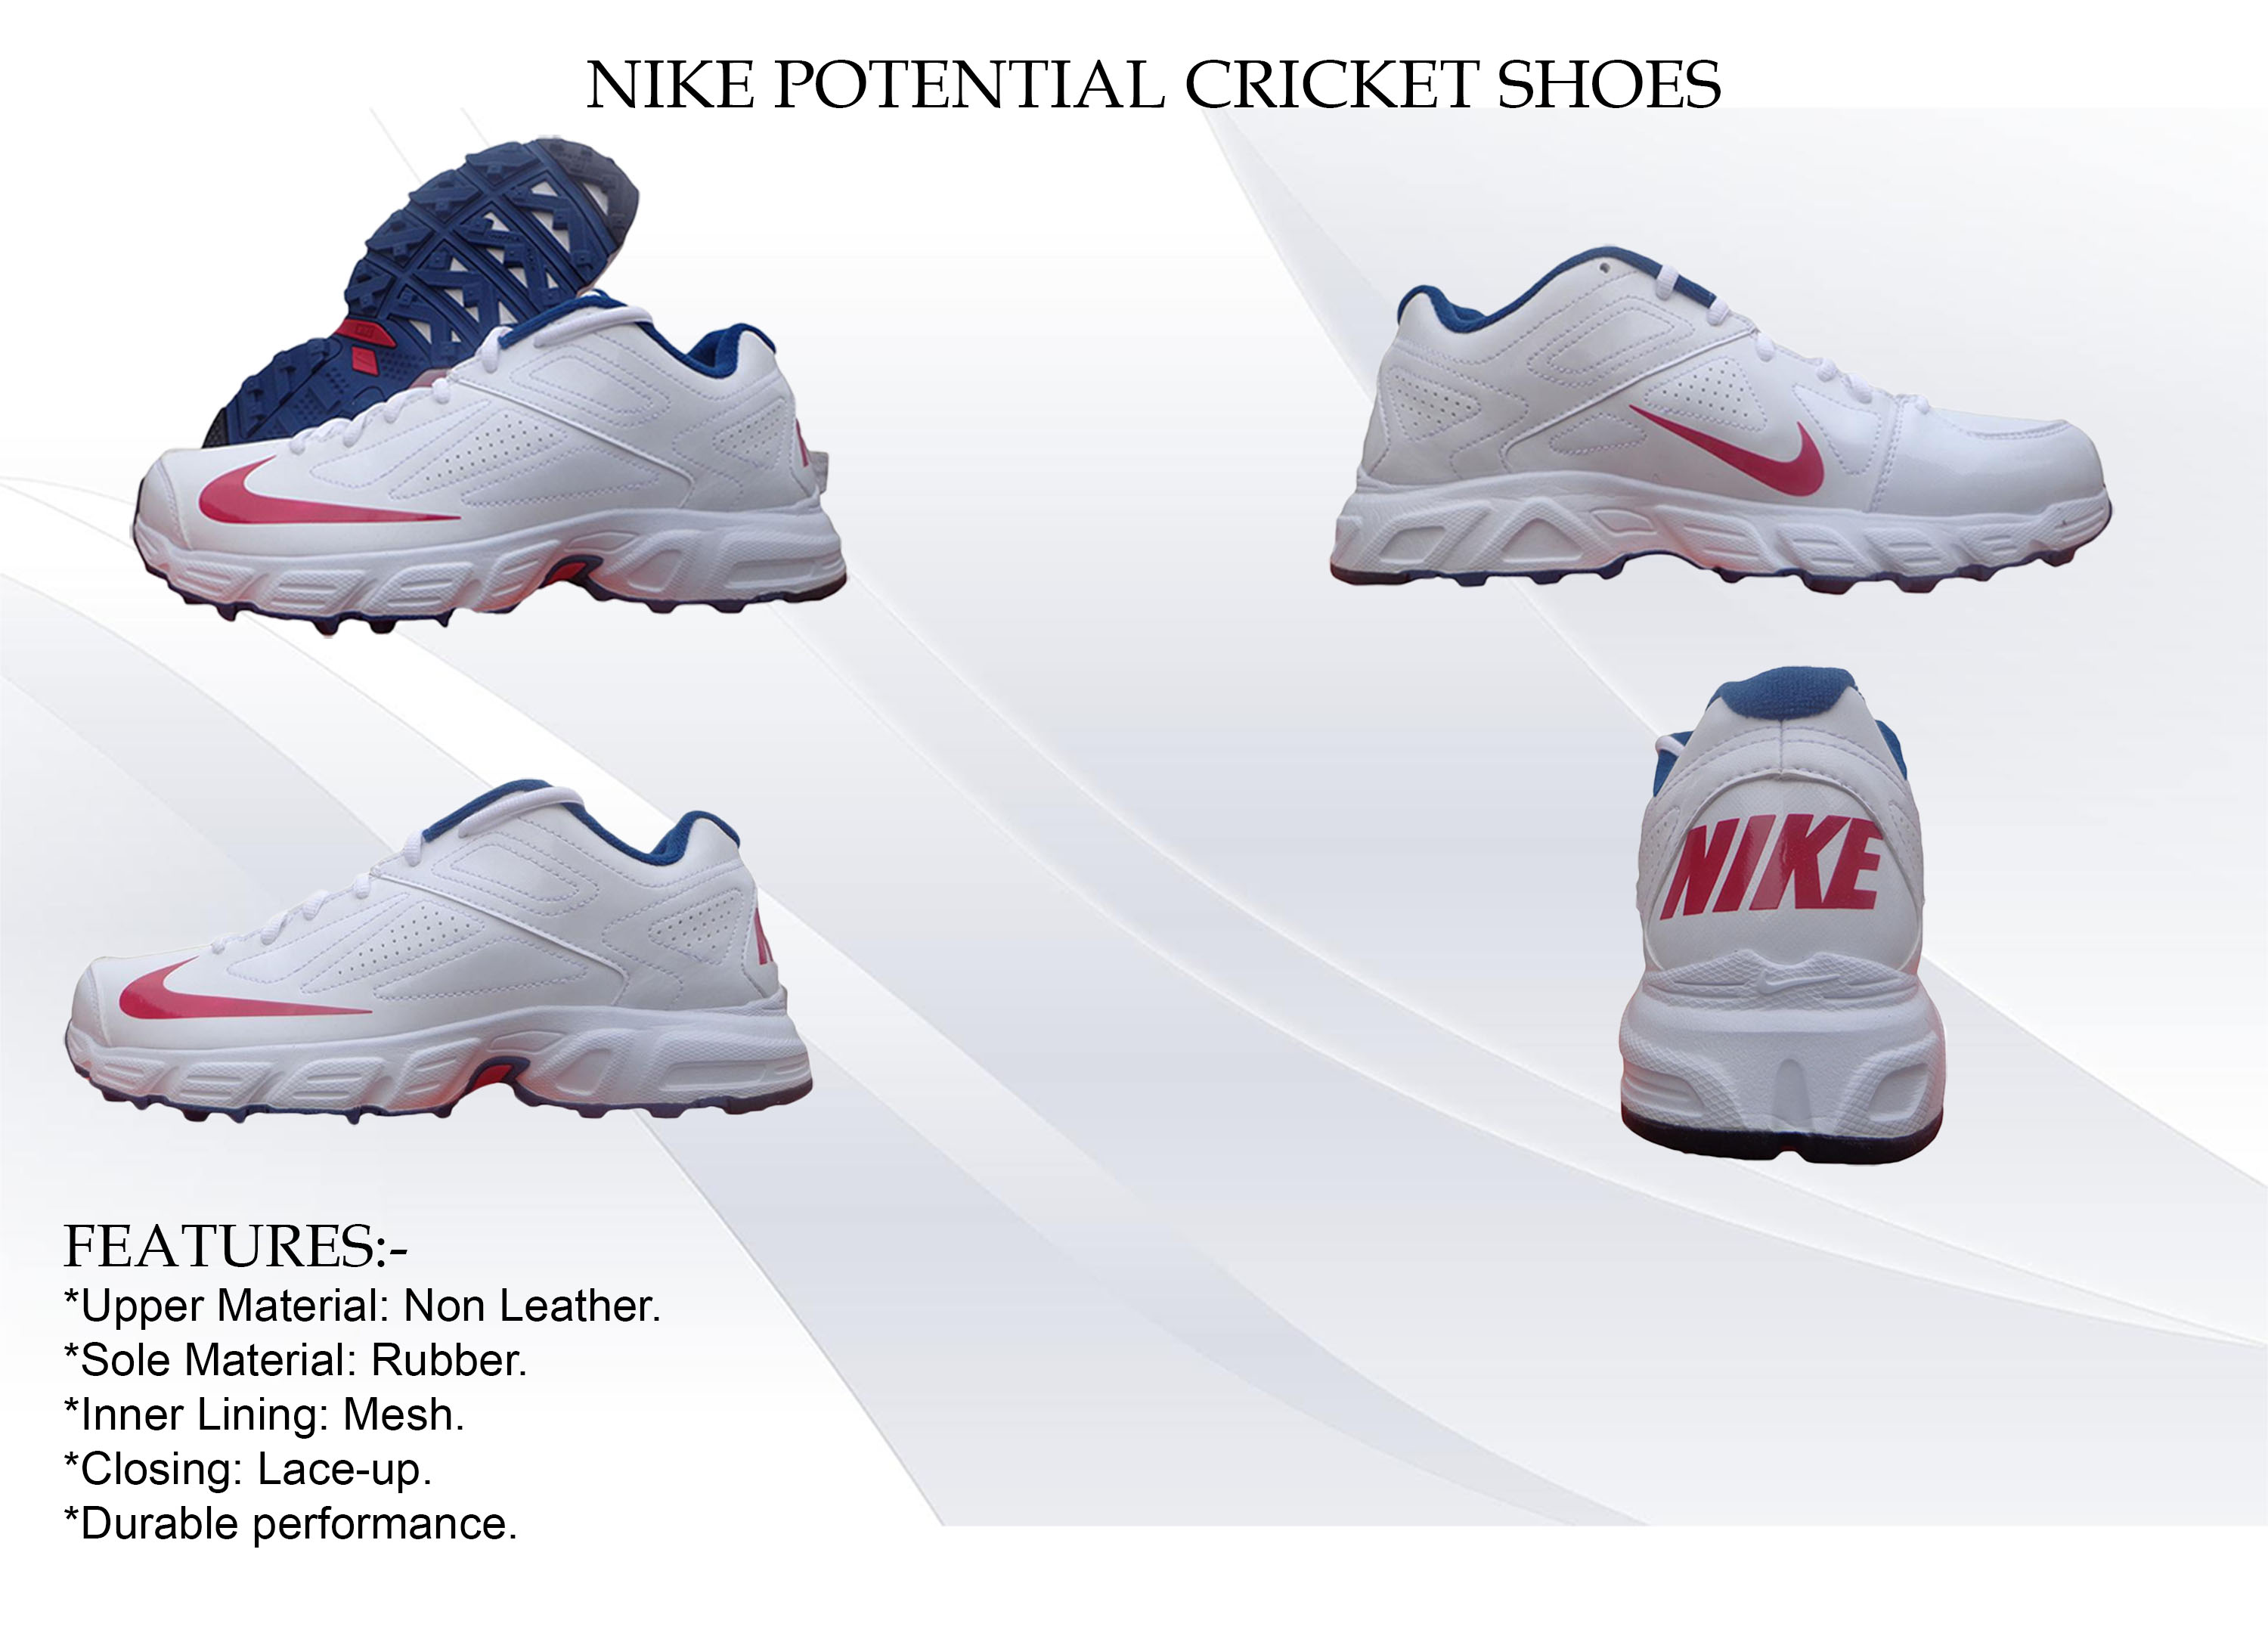 Best Selling Cricket Shoes in Year 2014 6007a523c